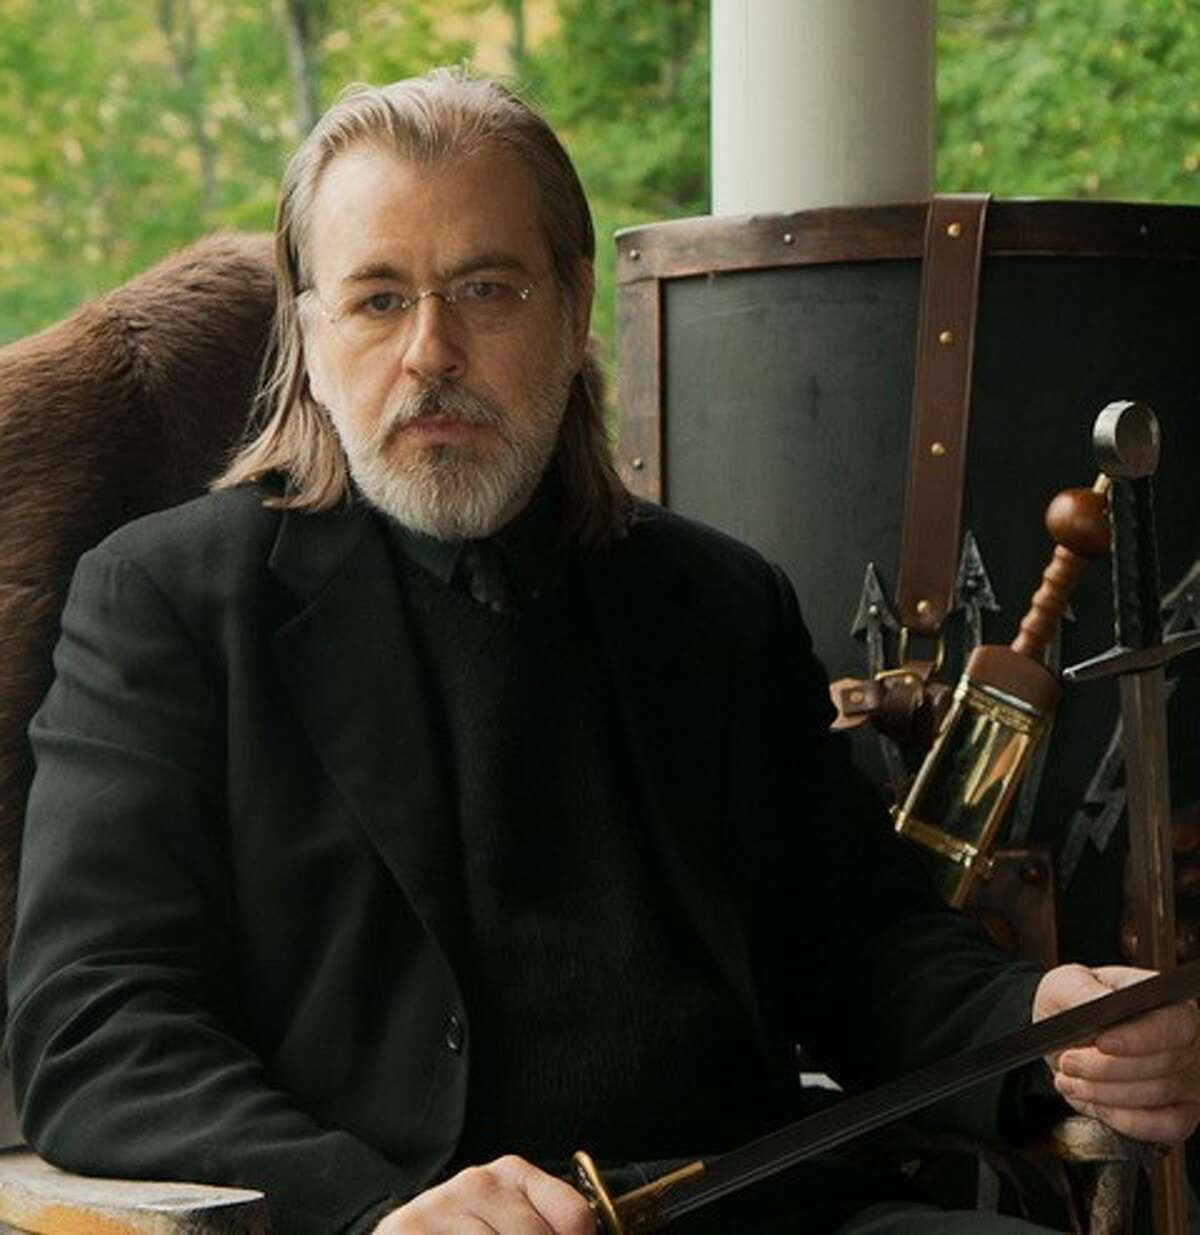 """Best-selling author Caleb Carr, who lives in the town of Berlin, has waited more than 20 years to see a screen adaptation finally get made of his novel """"The Alienist."""" A 10-episode TV series starts Monday, Jan. 22, on TNT."""